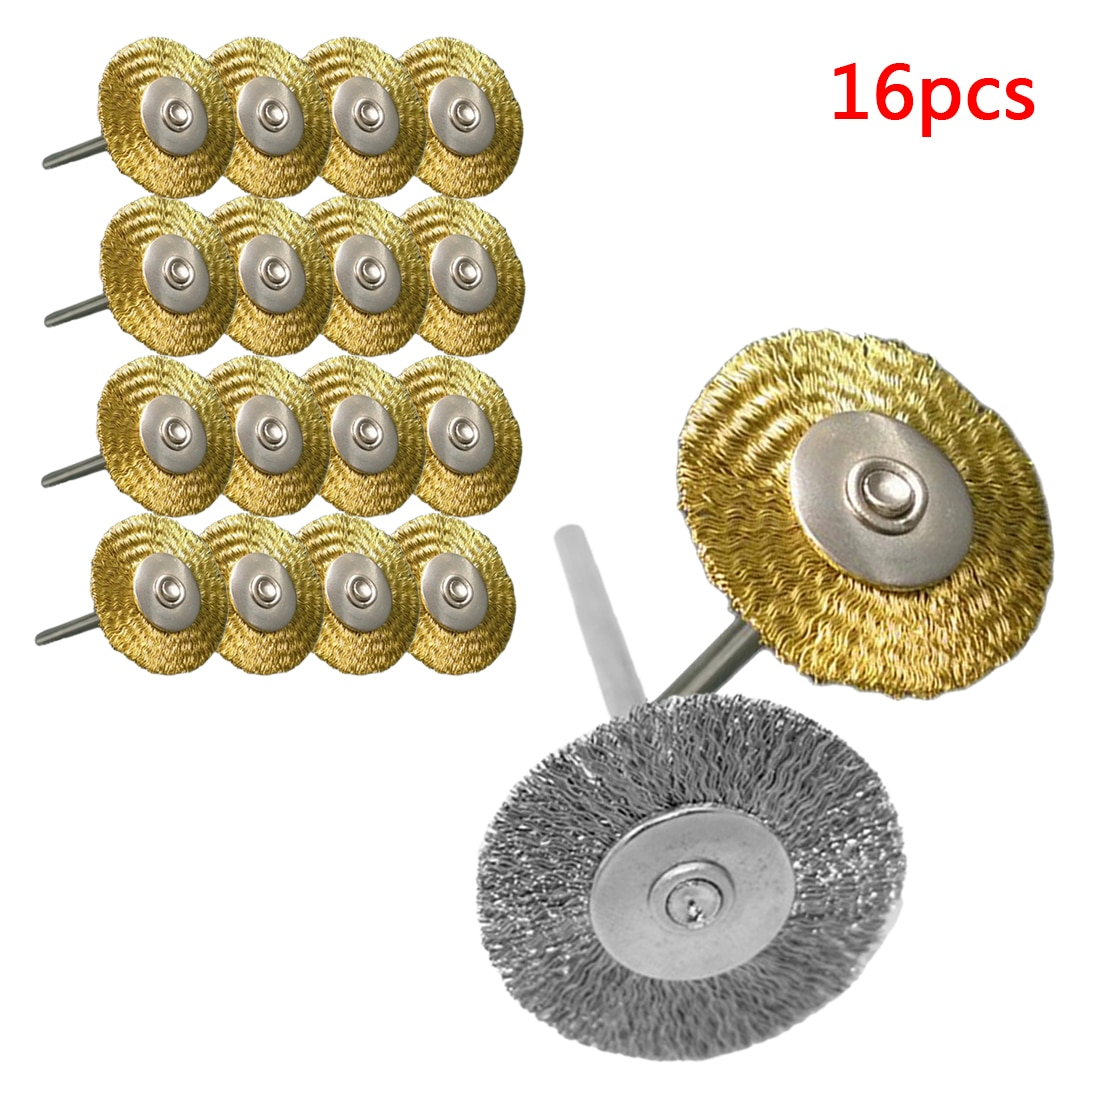 30pcs mini rotary stainless steel wire wheel wire brush small wire brushes set dremel accessories for mini drill rotary tools 25mm 16pcs Platinum Blades Steel Wire Wheel Brush Dremel Rotary Tool for Mini Drill Tools Polishing Dremel Accessories